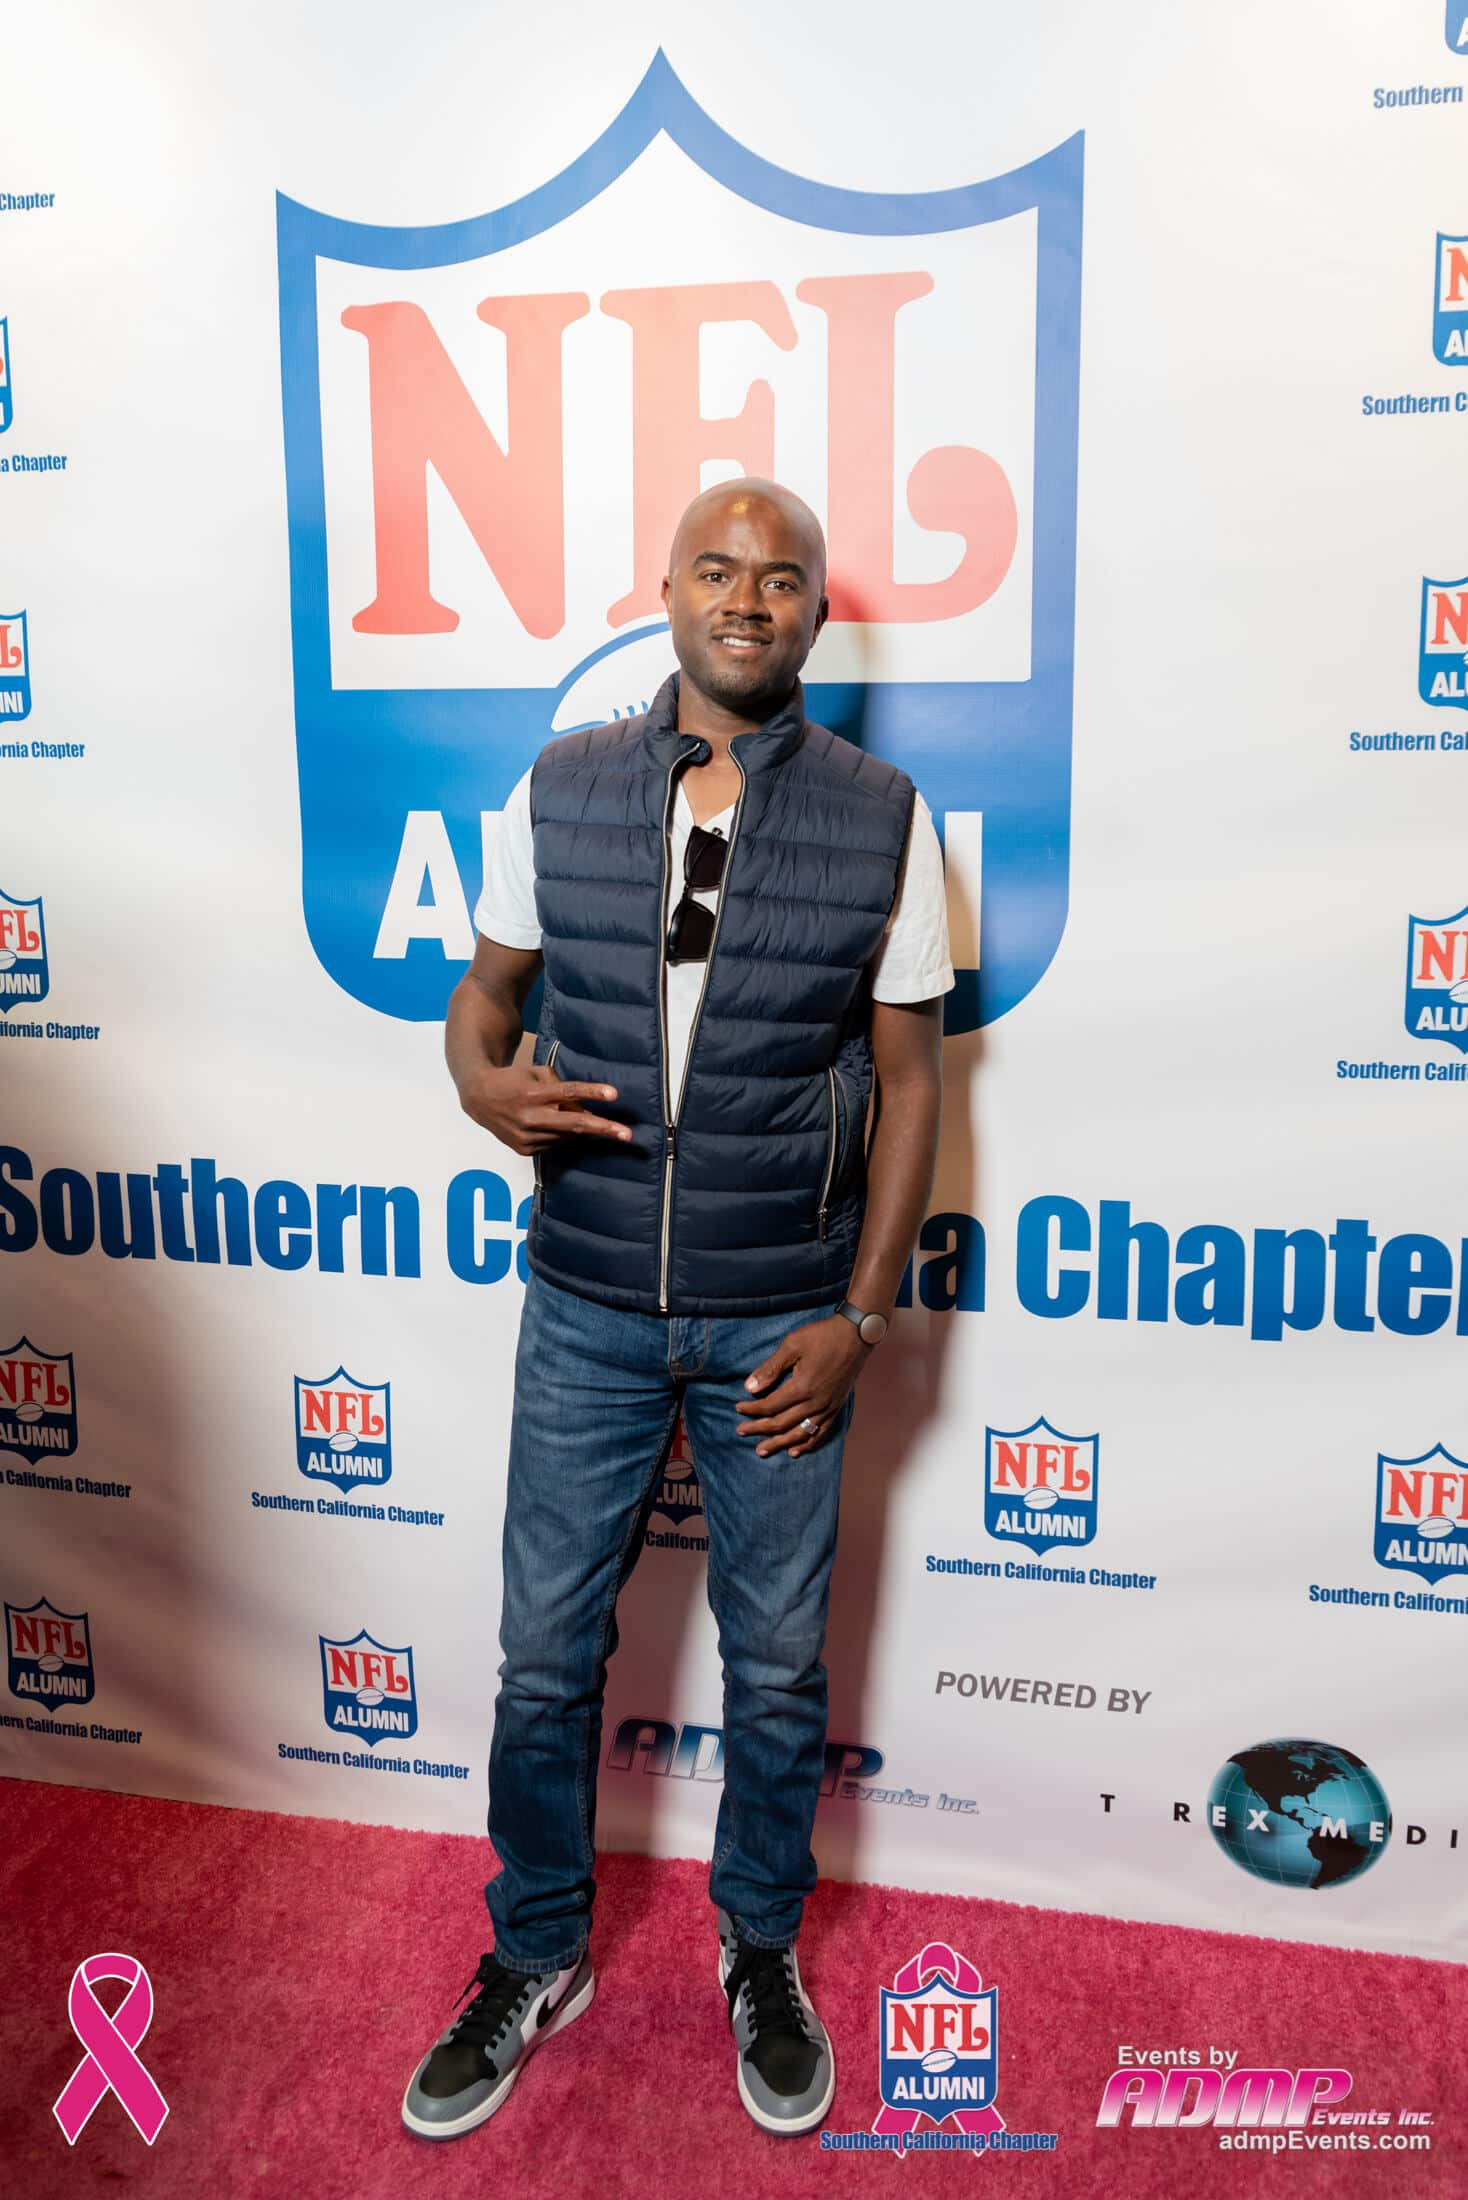 NFL Alumni SoCal Charity Event Series Breast Cancer Event 10-14-19-312